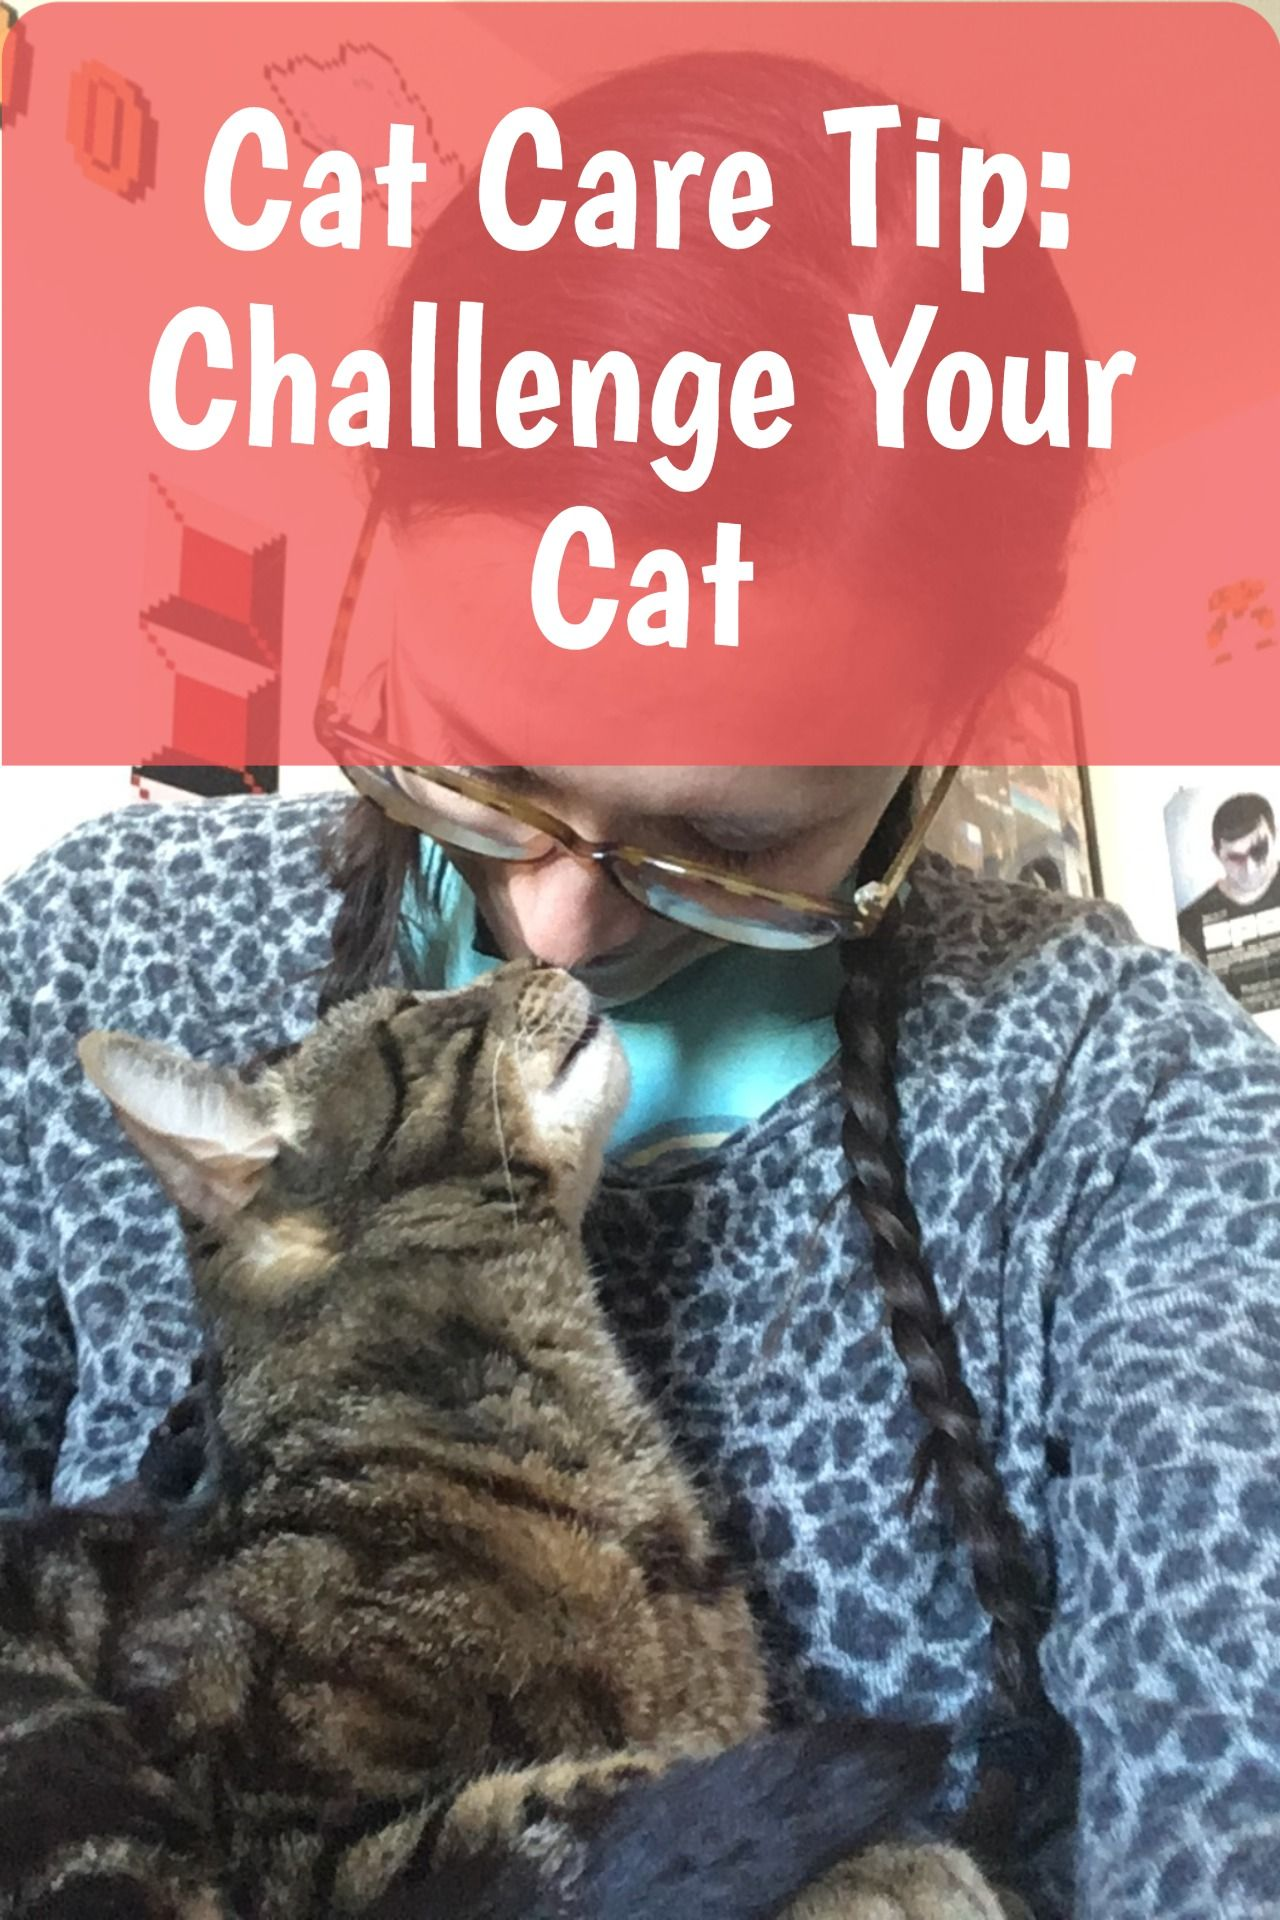 How To Keep A Cat Entertained In An Apartment Pro Tips In 2020 Cat Care Pet Care Cats Cat Care Tips